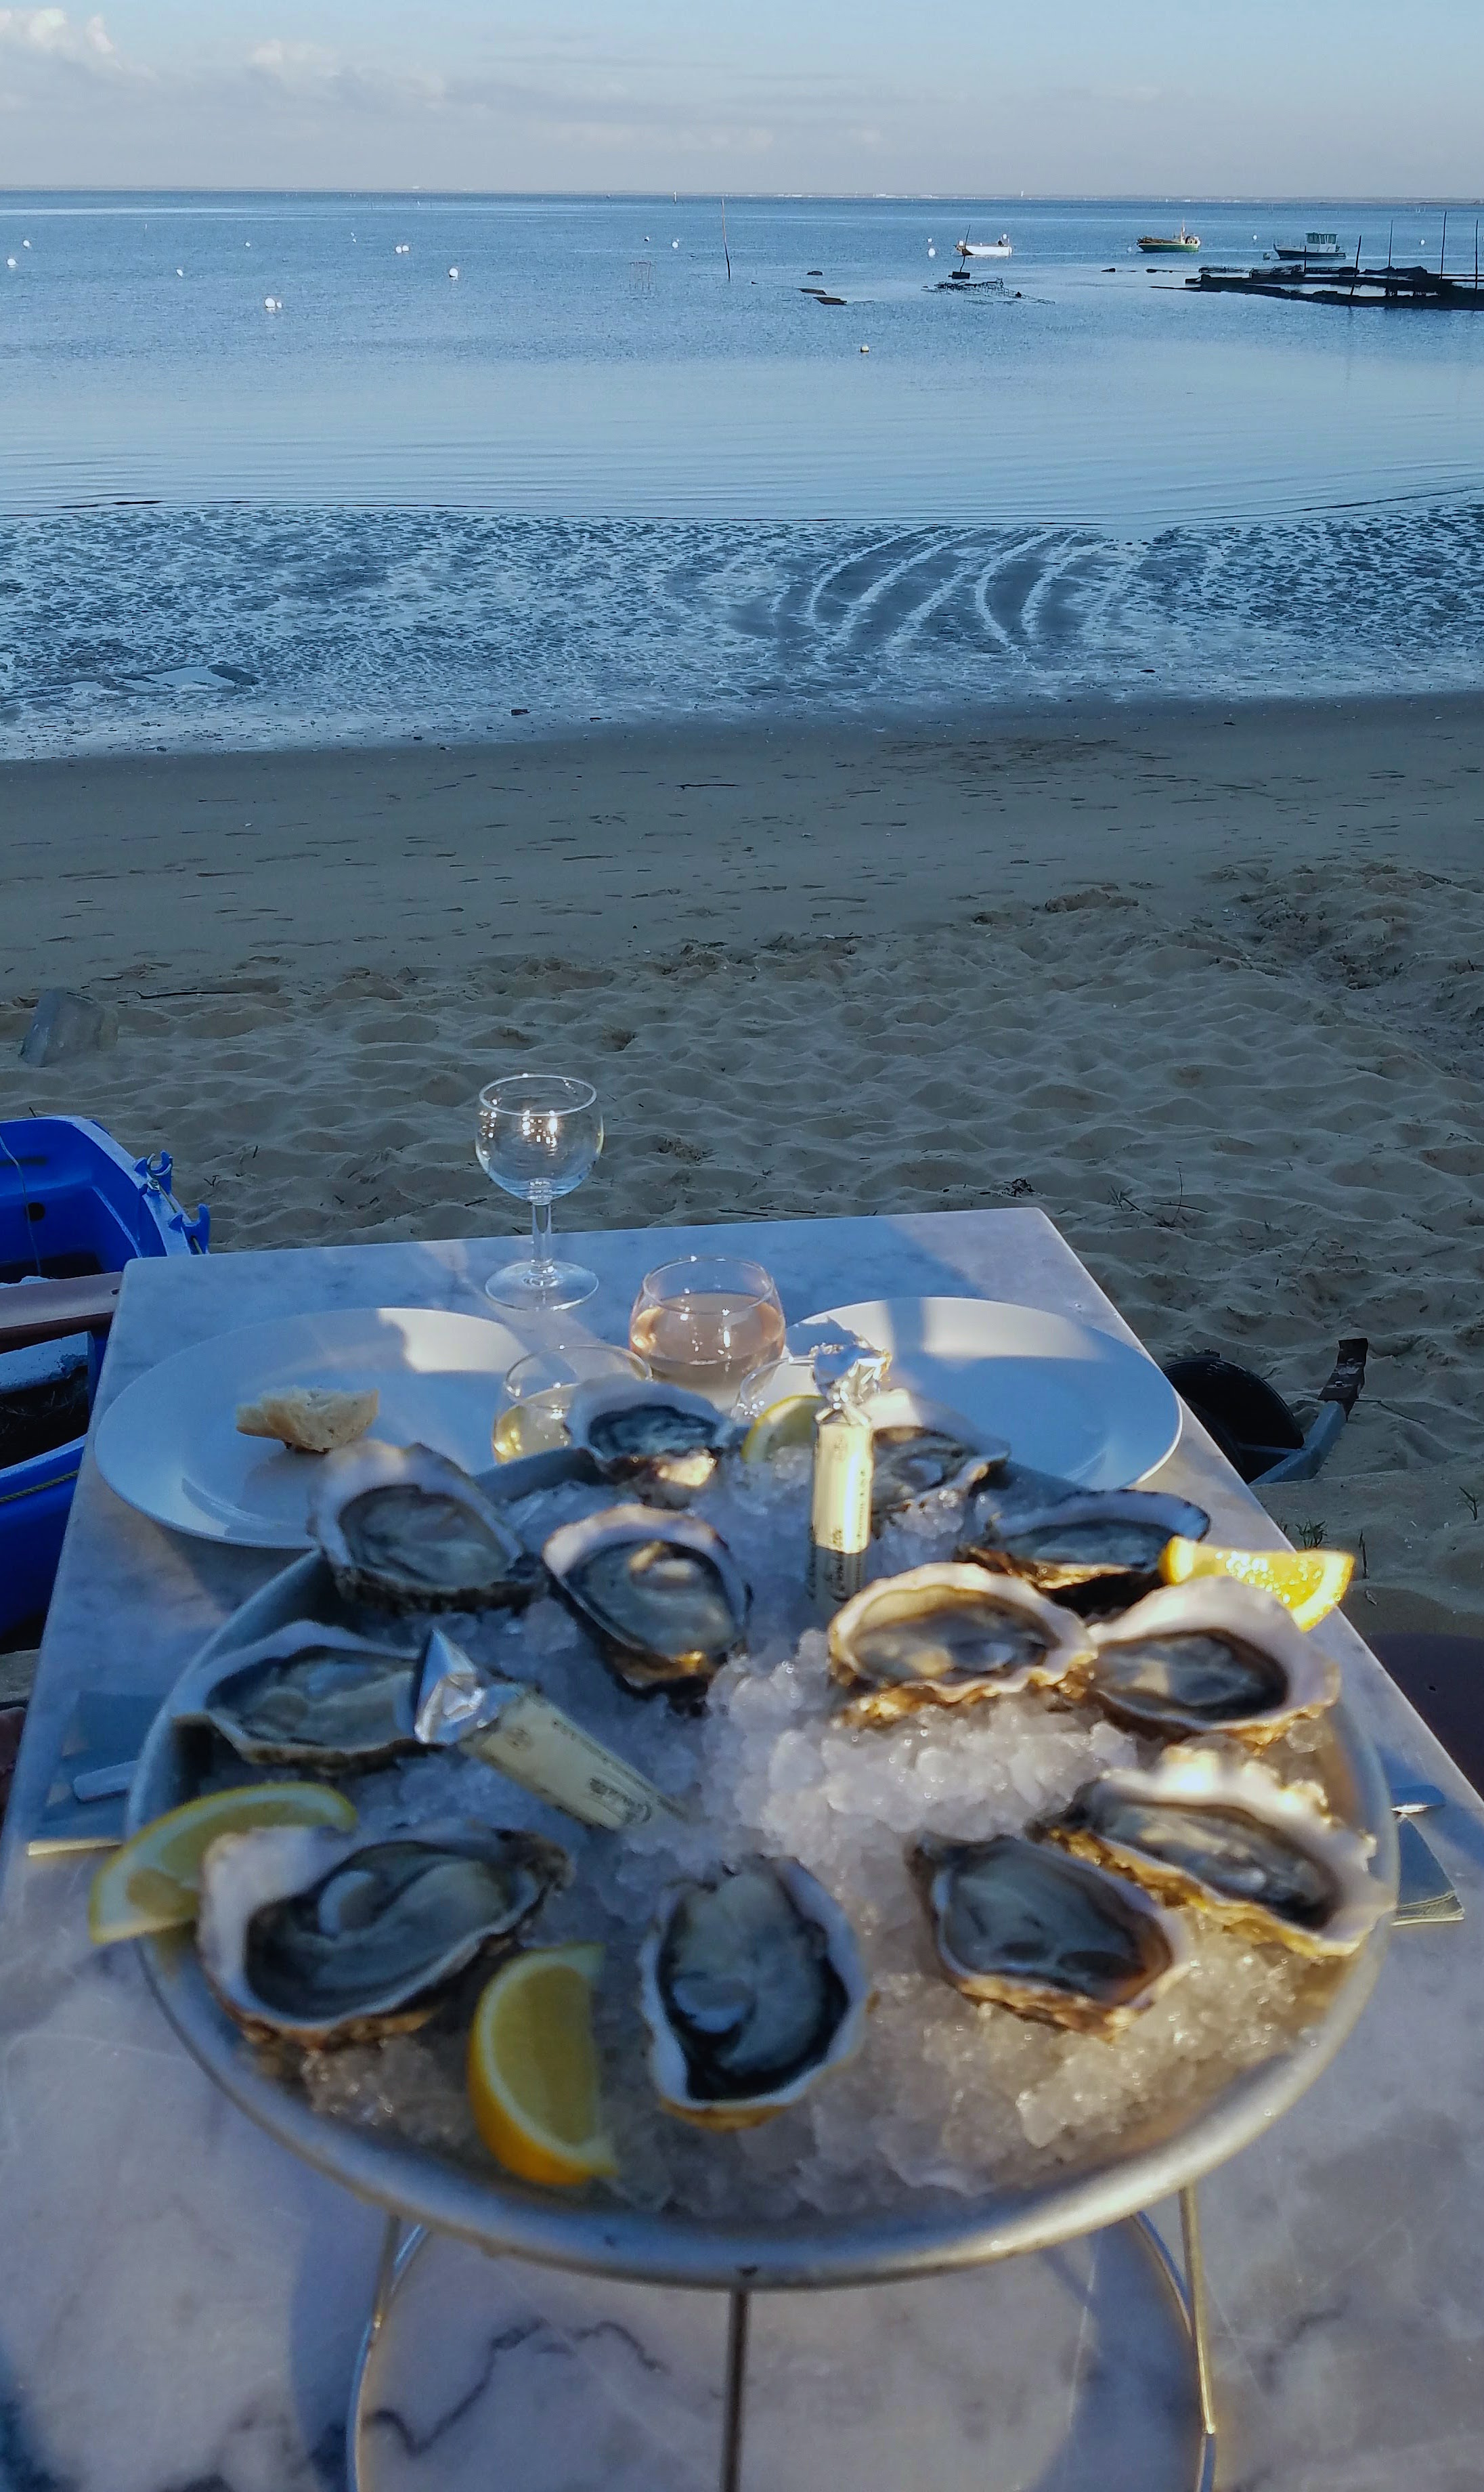 The oysters boyfriend ordered! Even a vegetarian can appreciate how fresh and local these are.